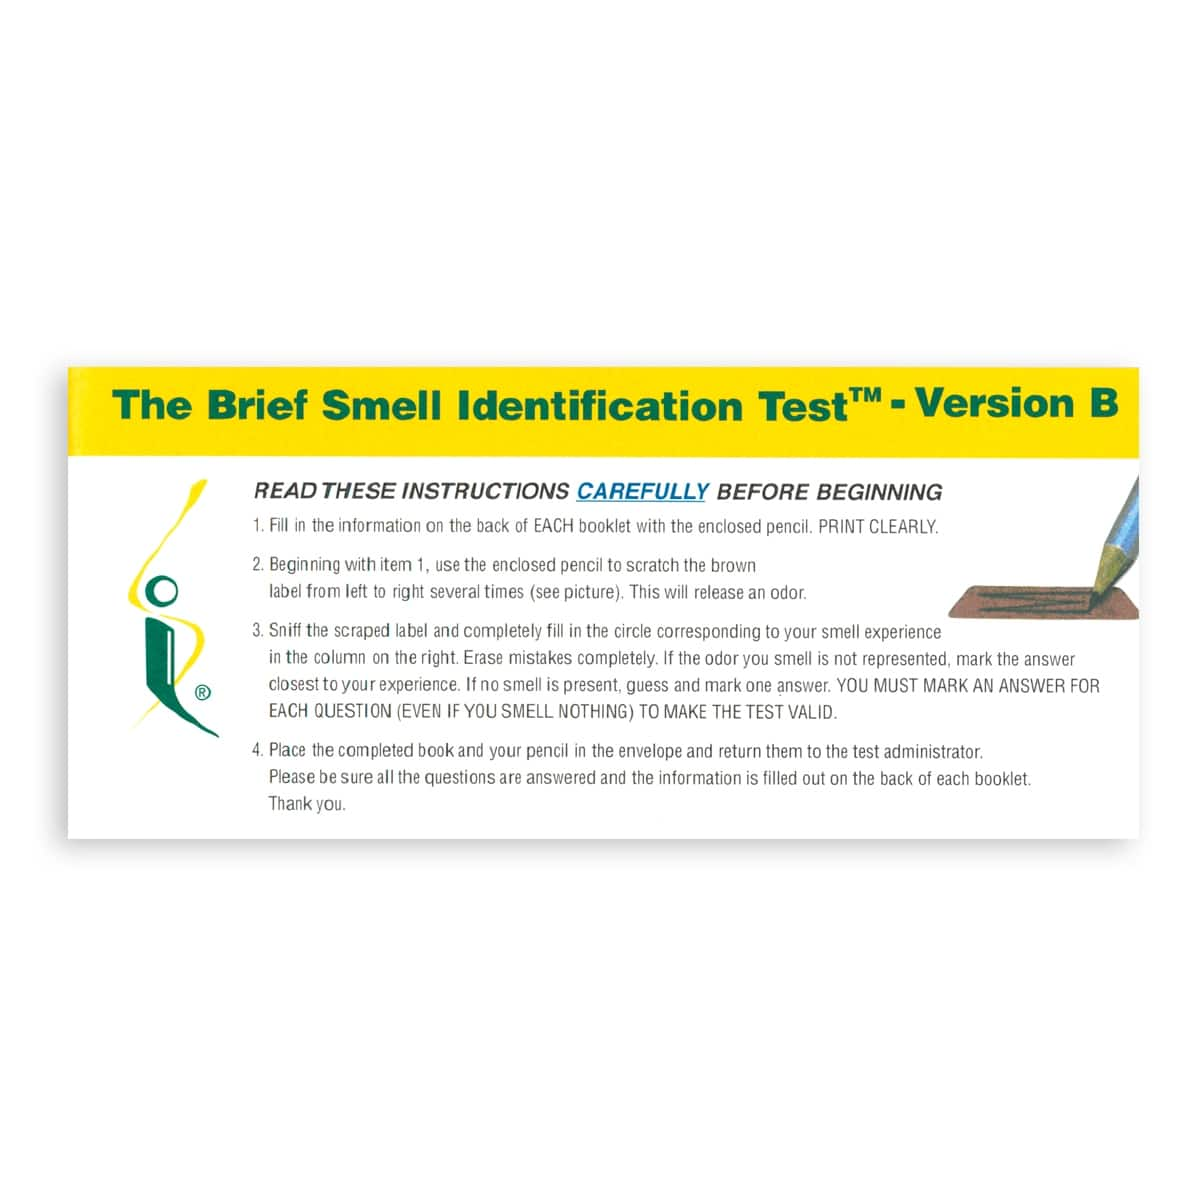 Brief Smell Identification Test Ver B Image